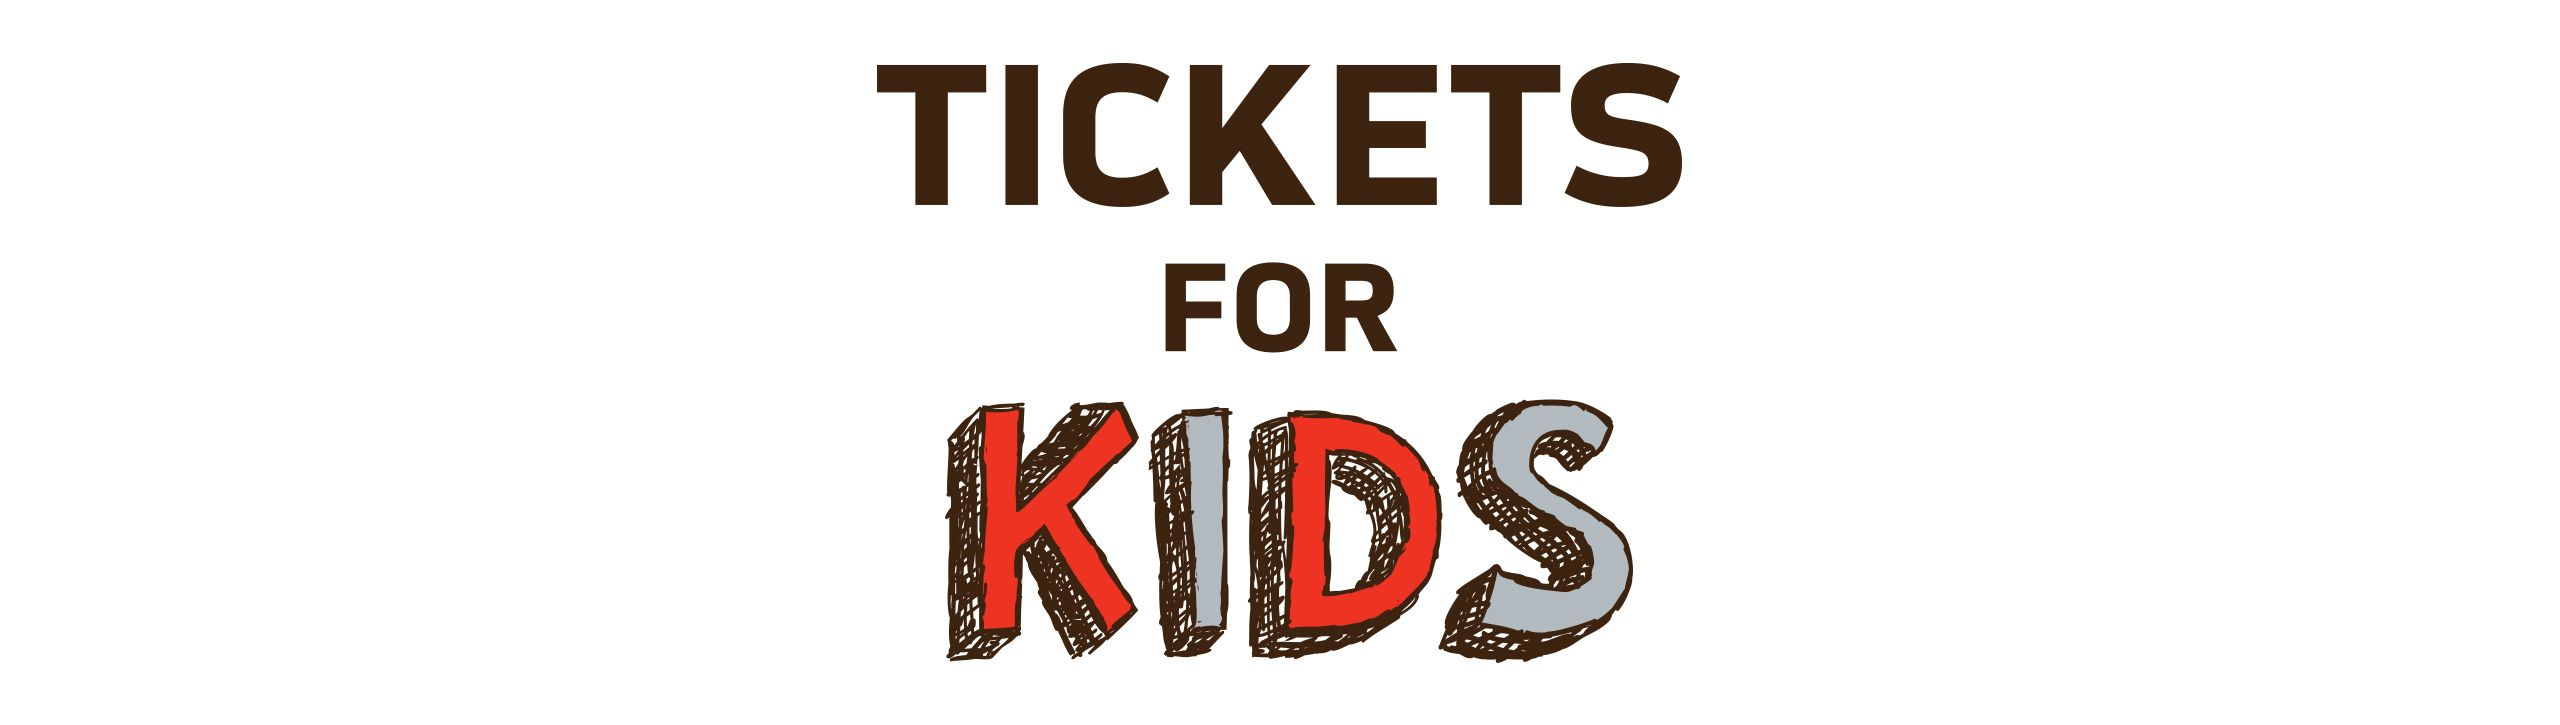 Tickets-for-Kids-header